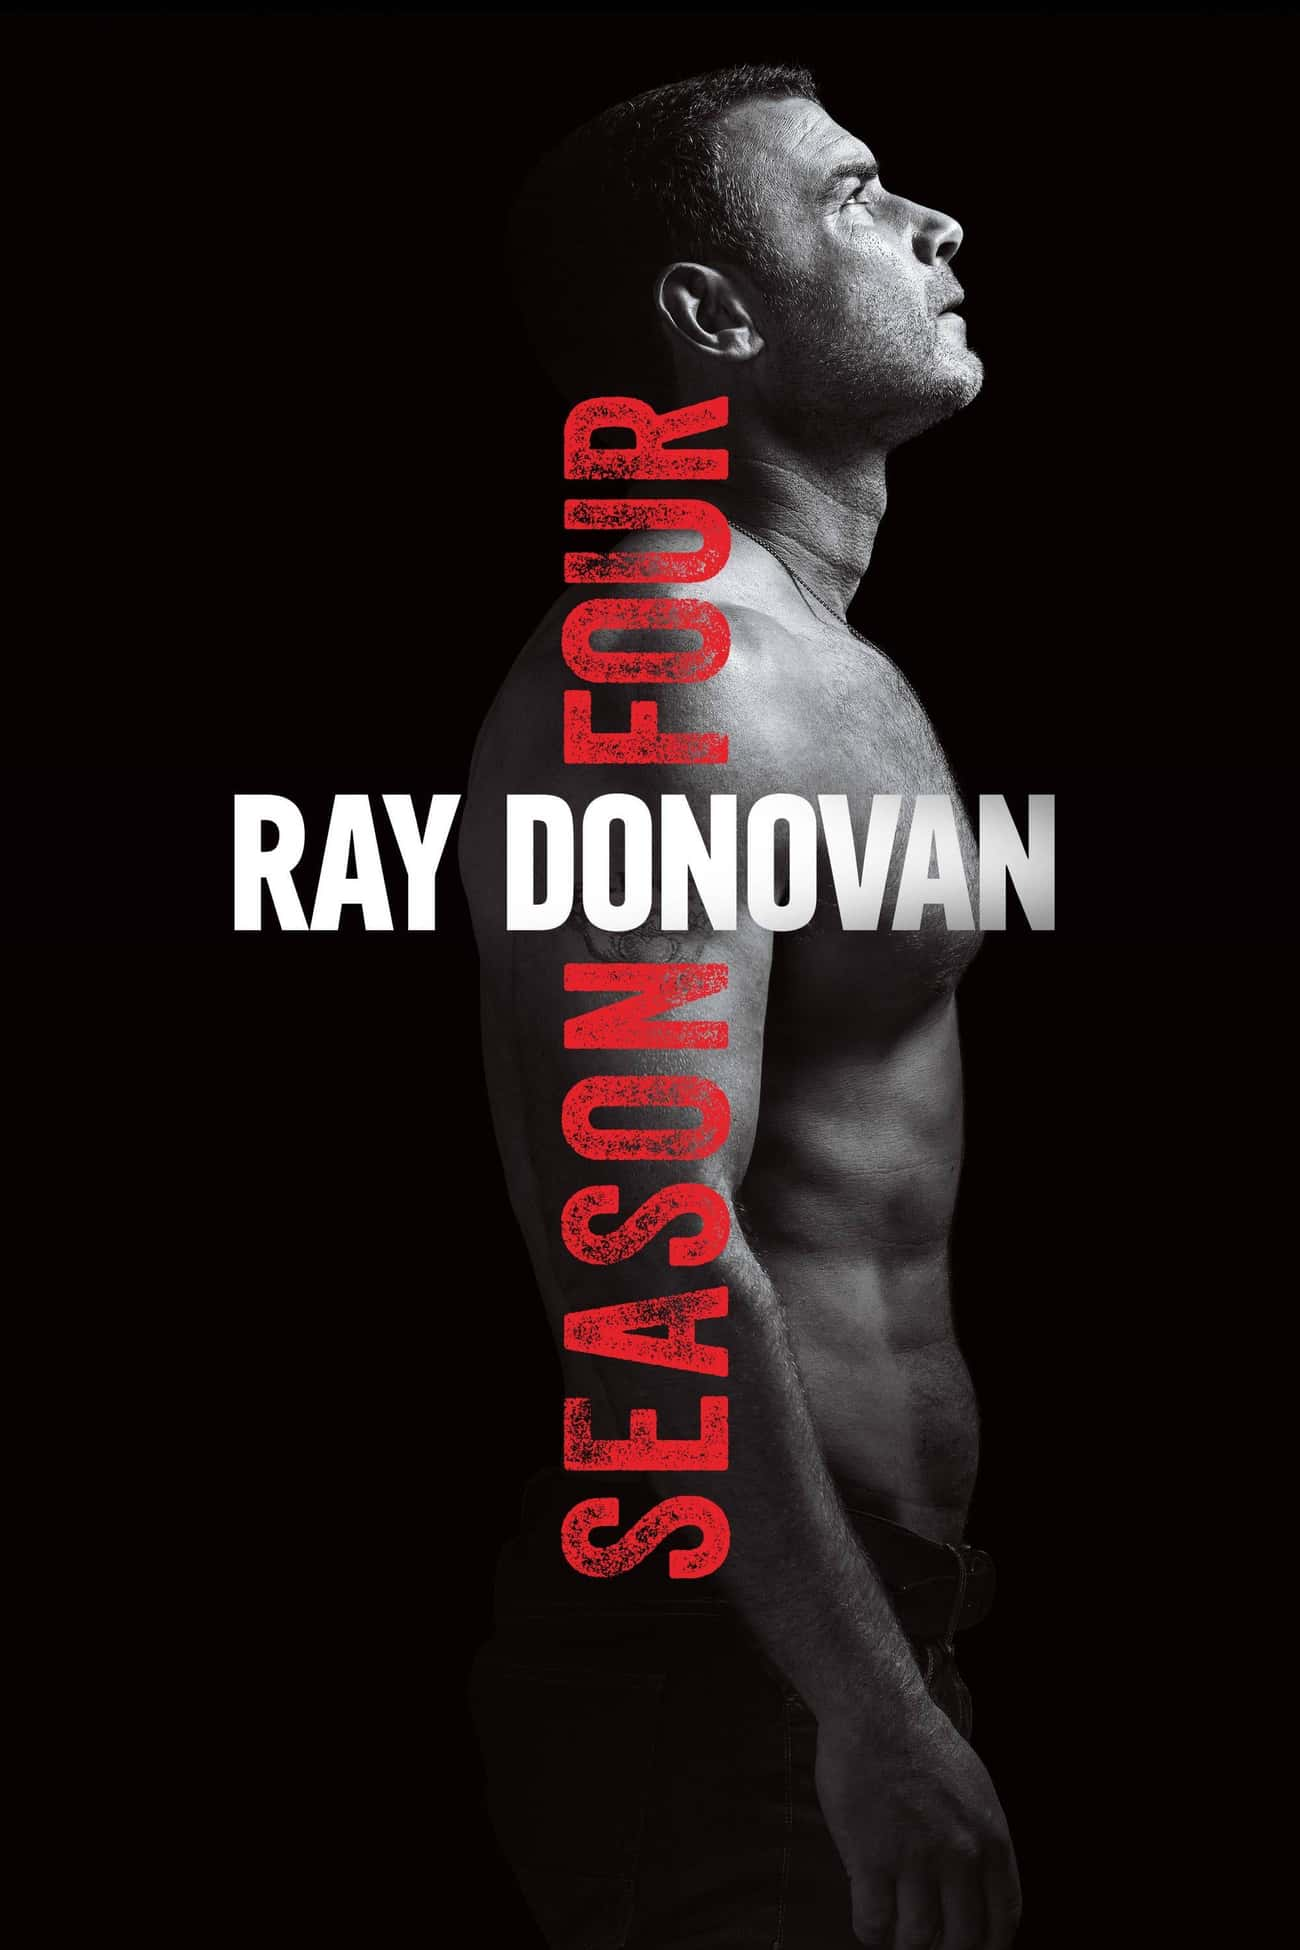 Ray Donovan - Season 4 is listed (or ranked) 4 on the list Ranking the Best Seasons of 'Ray Donovan'